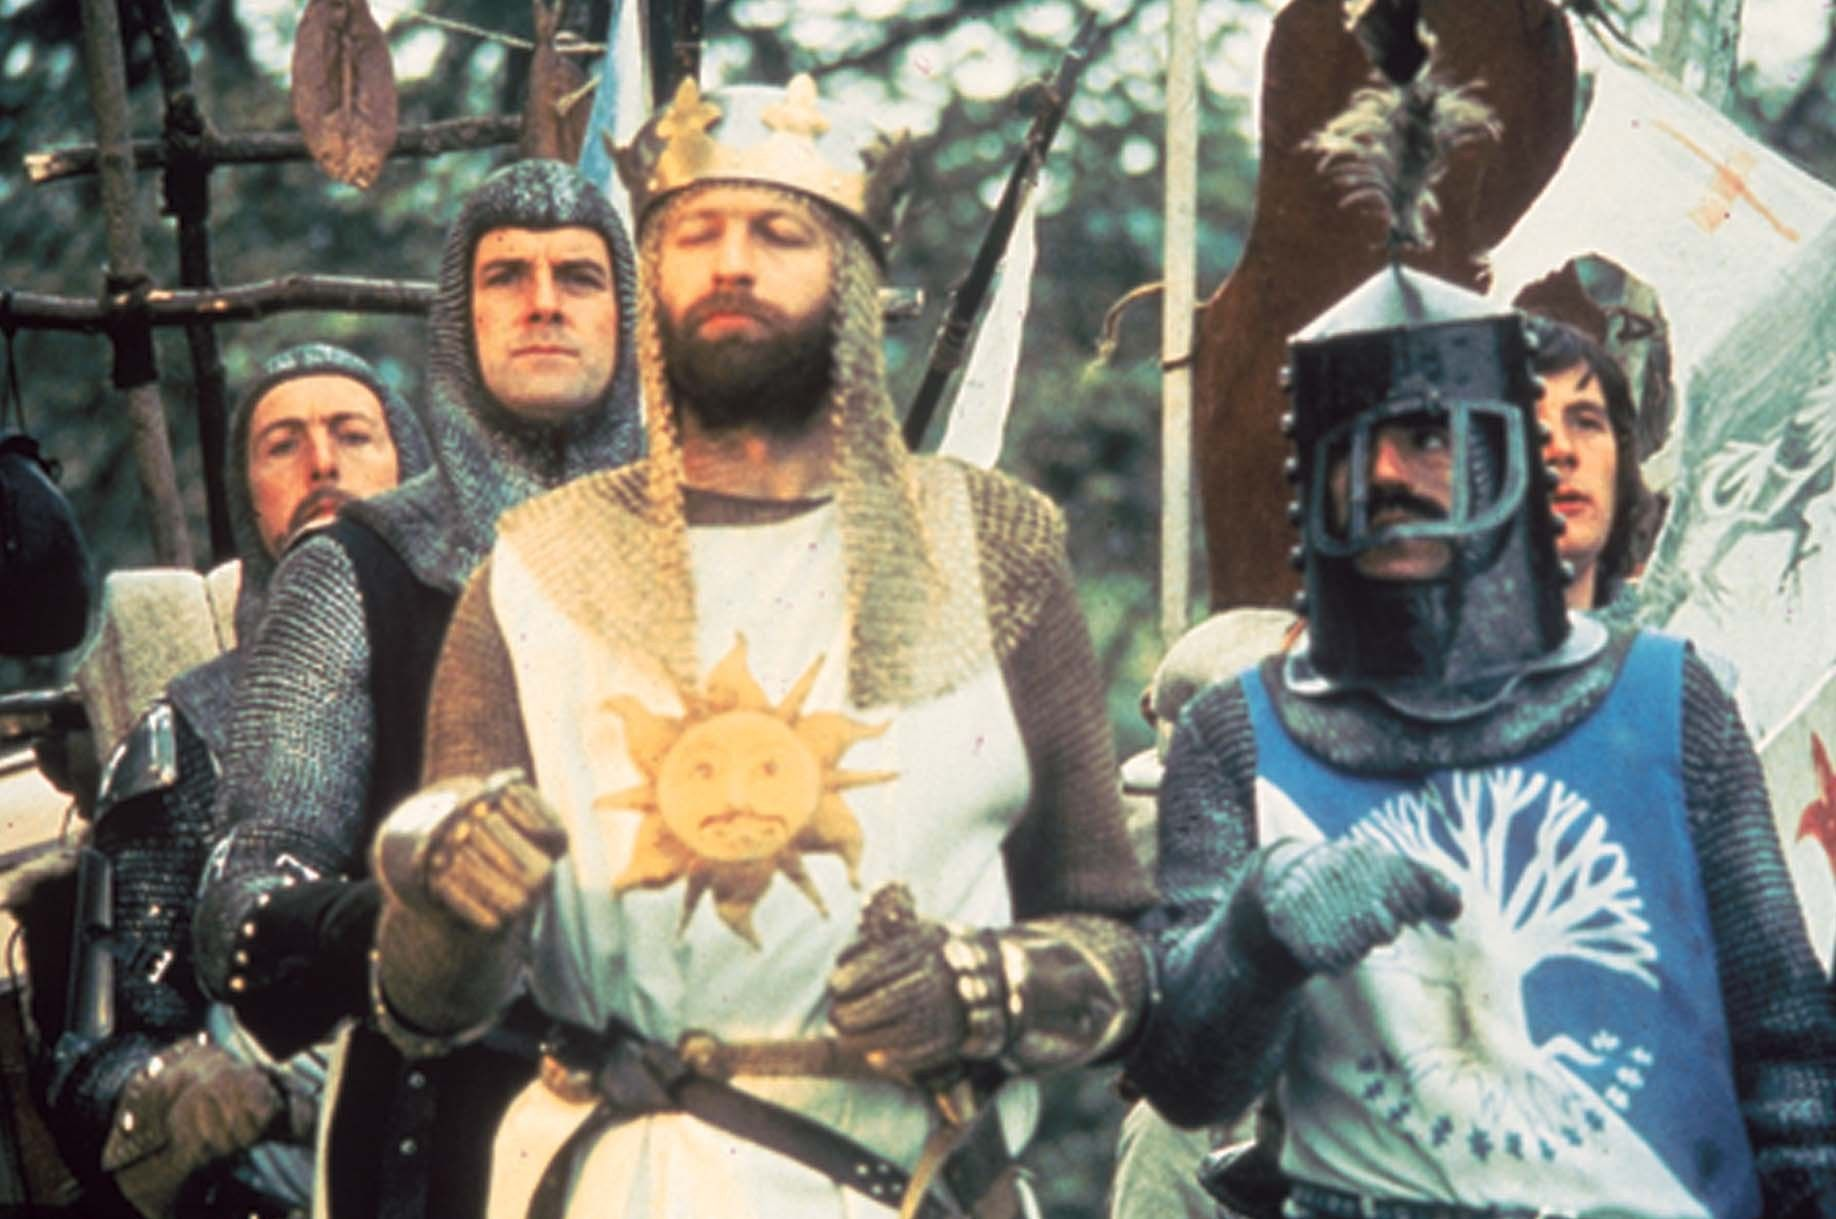 Re Viewed Monty Python And The Holy Grail Remains A Comedy Classic 40 Years Later